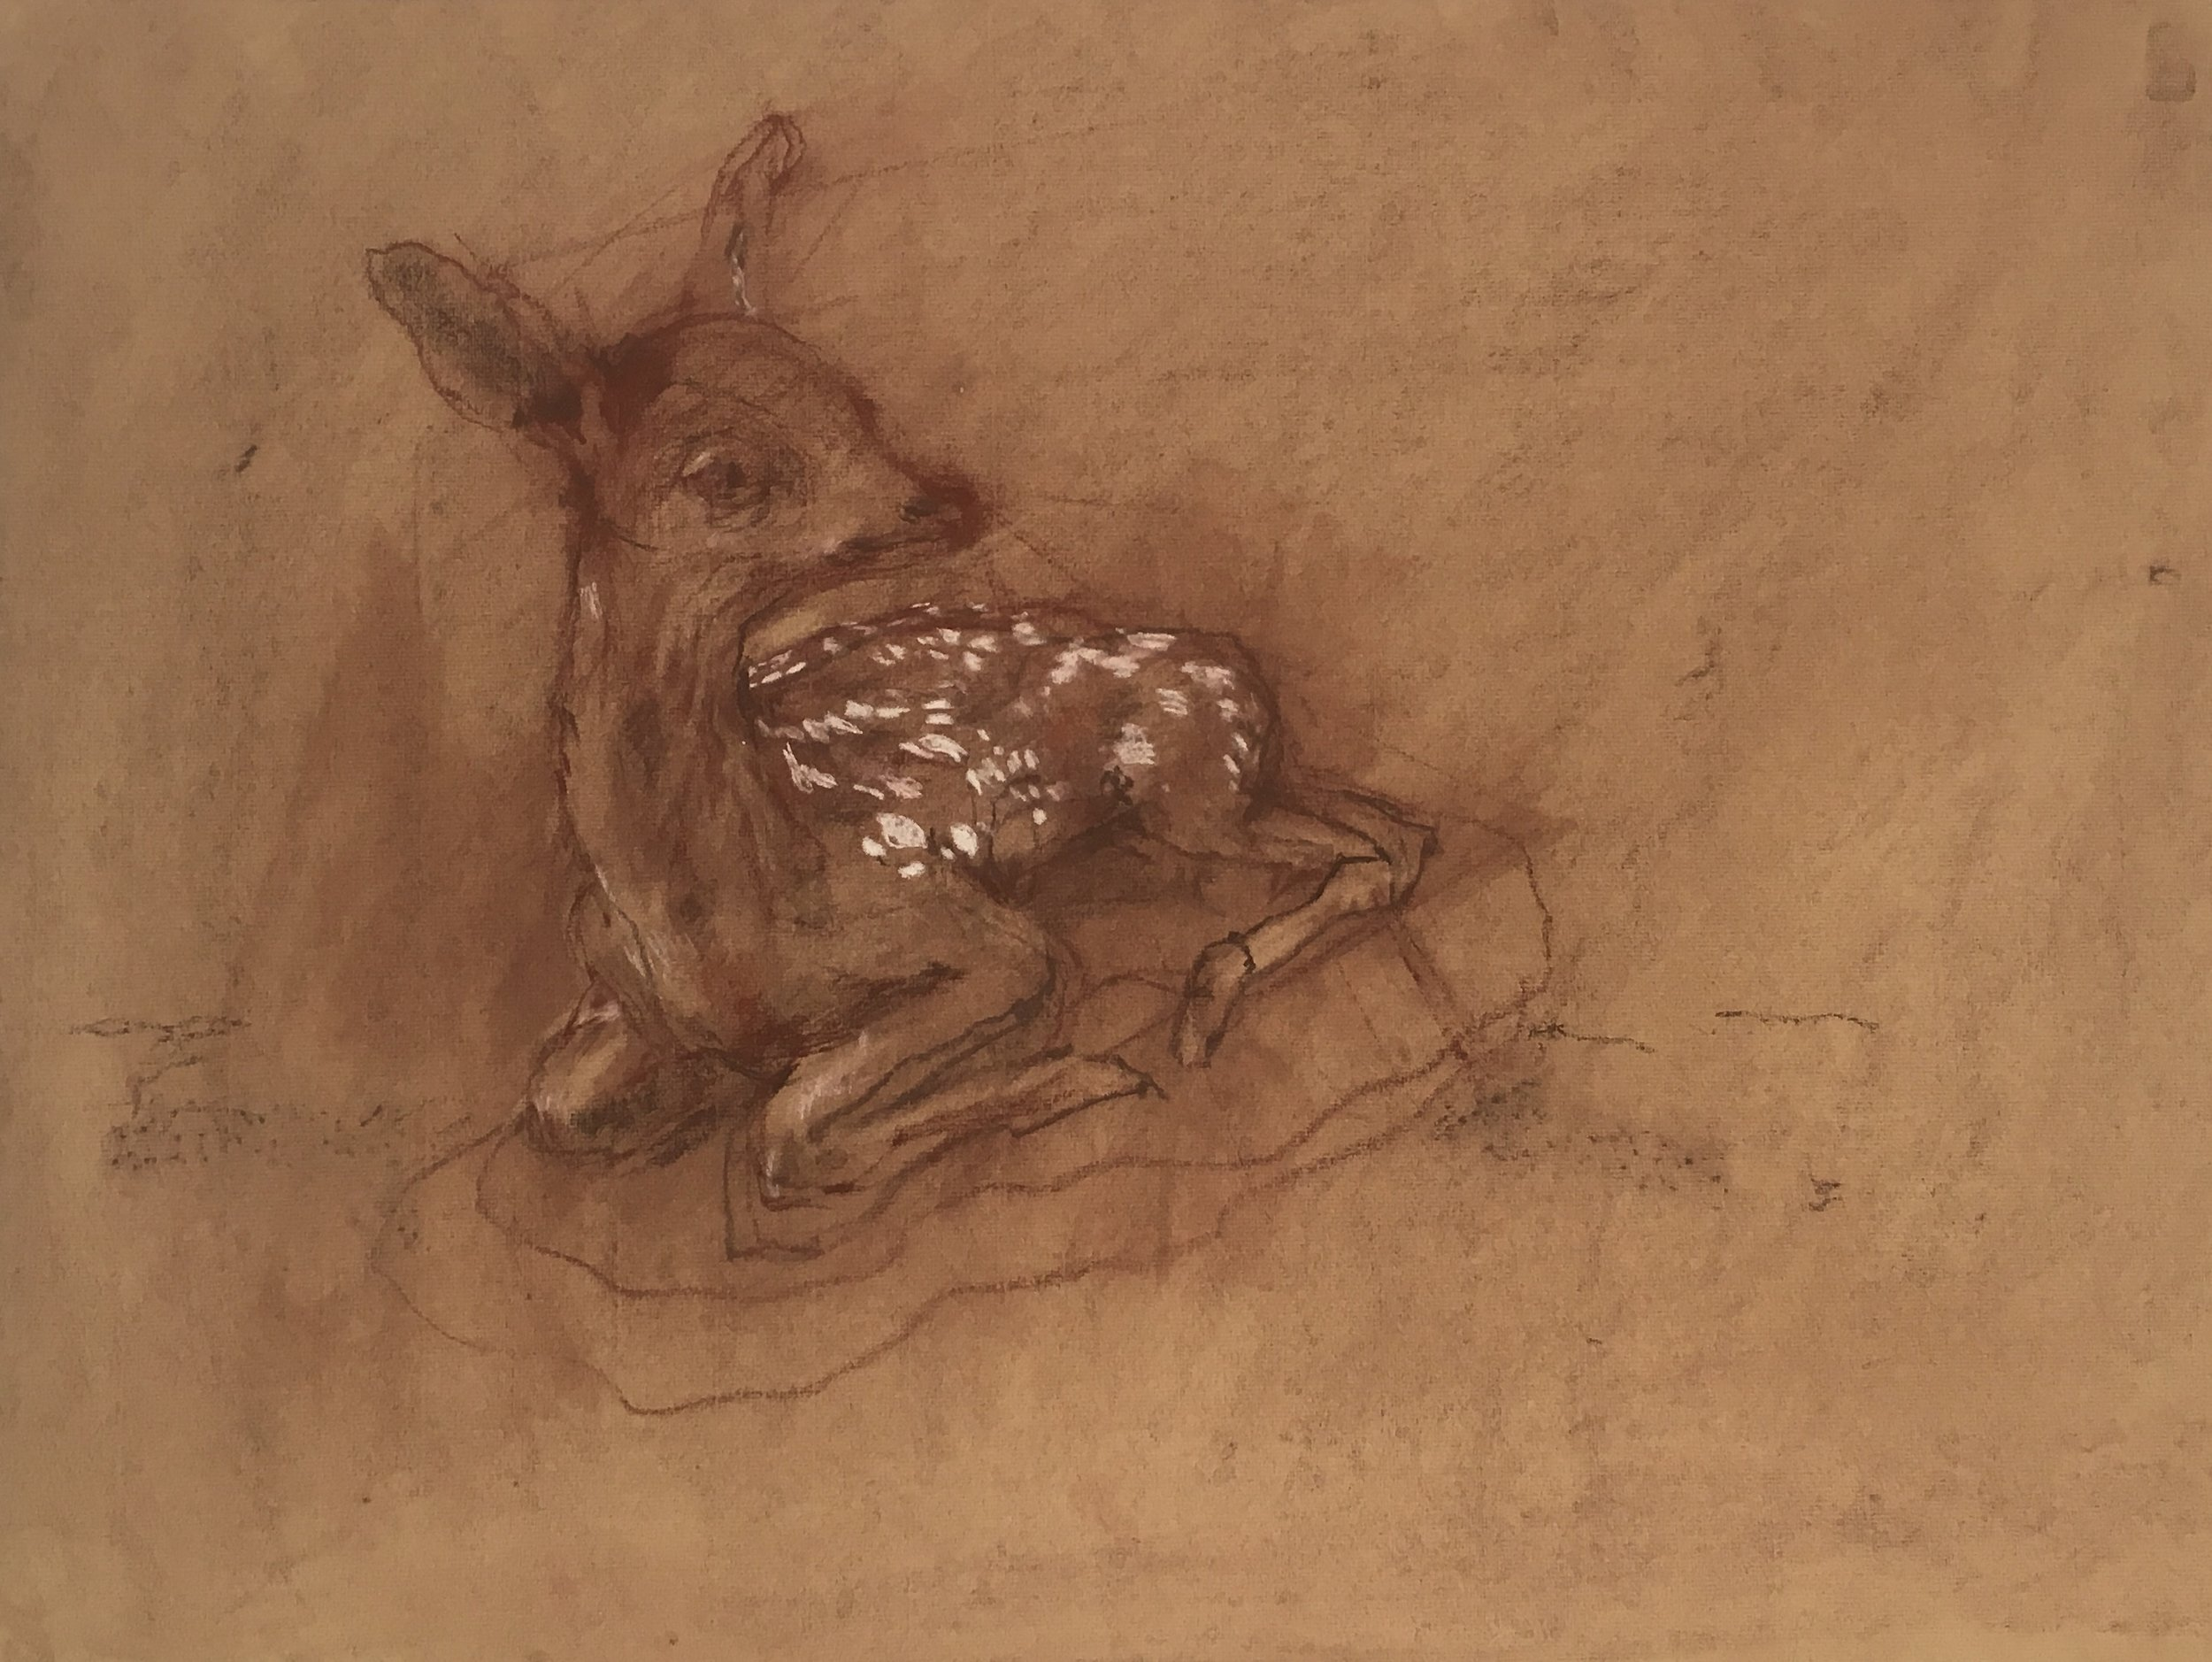 Baby Deer Taxidermy (1 of 6)  Conte crayon on brown pastel paper 22 x 19 inches 2019